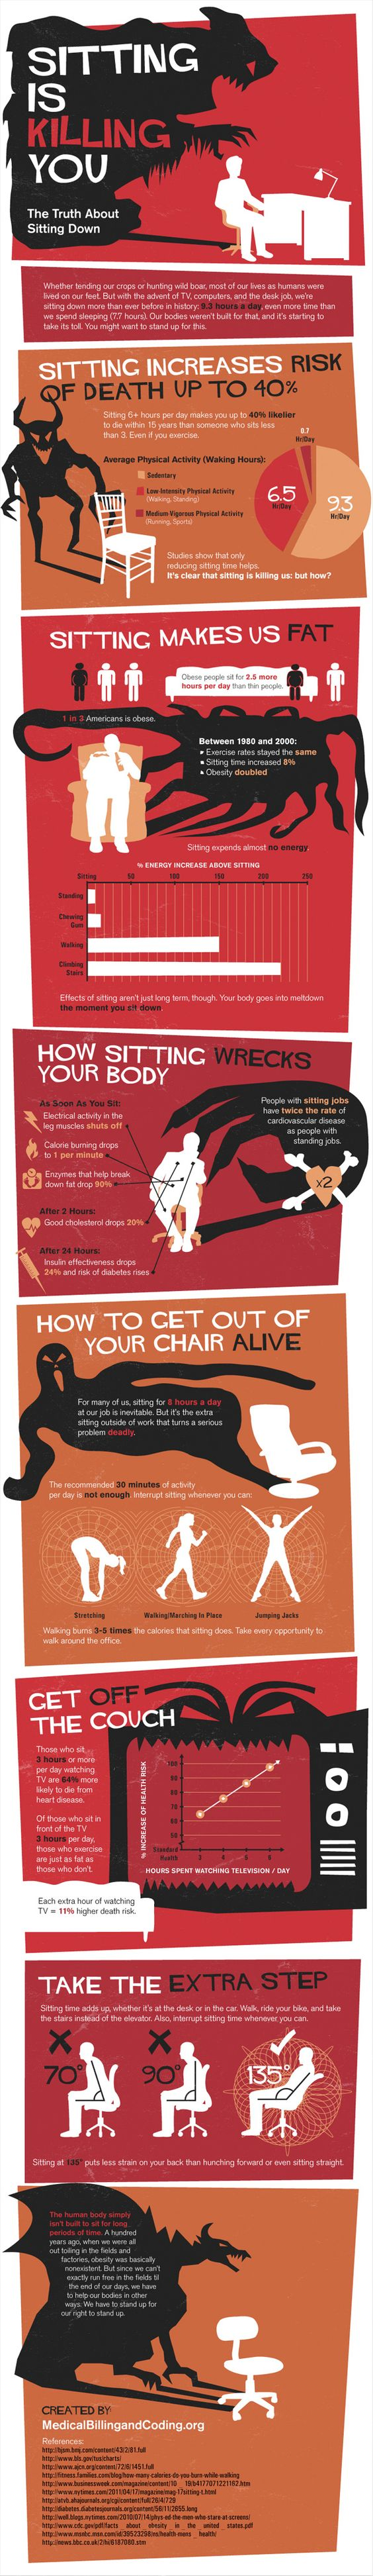 Sitting down is killing you.